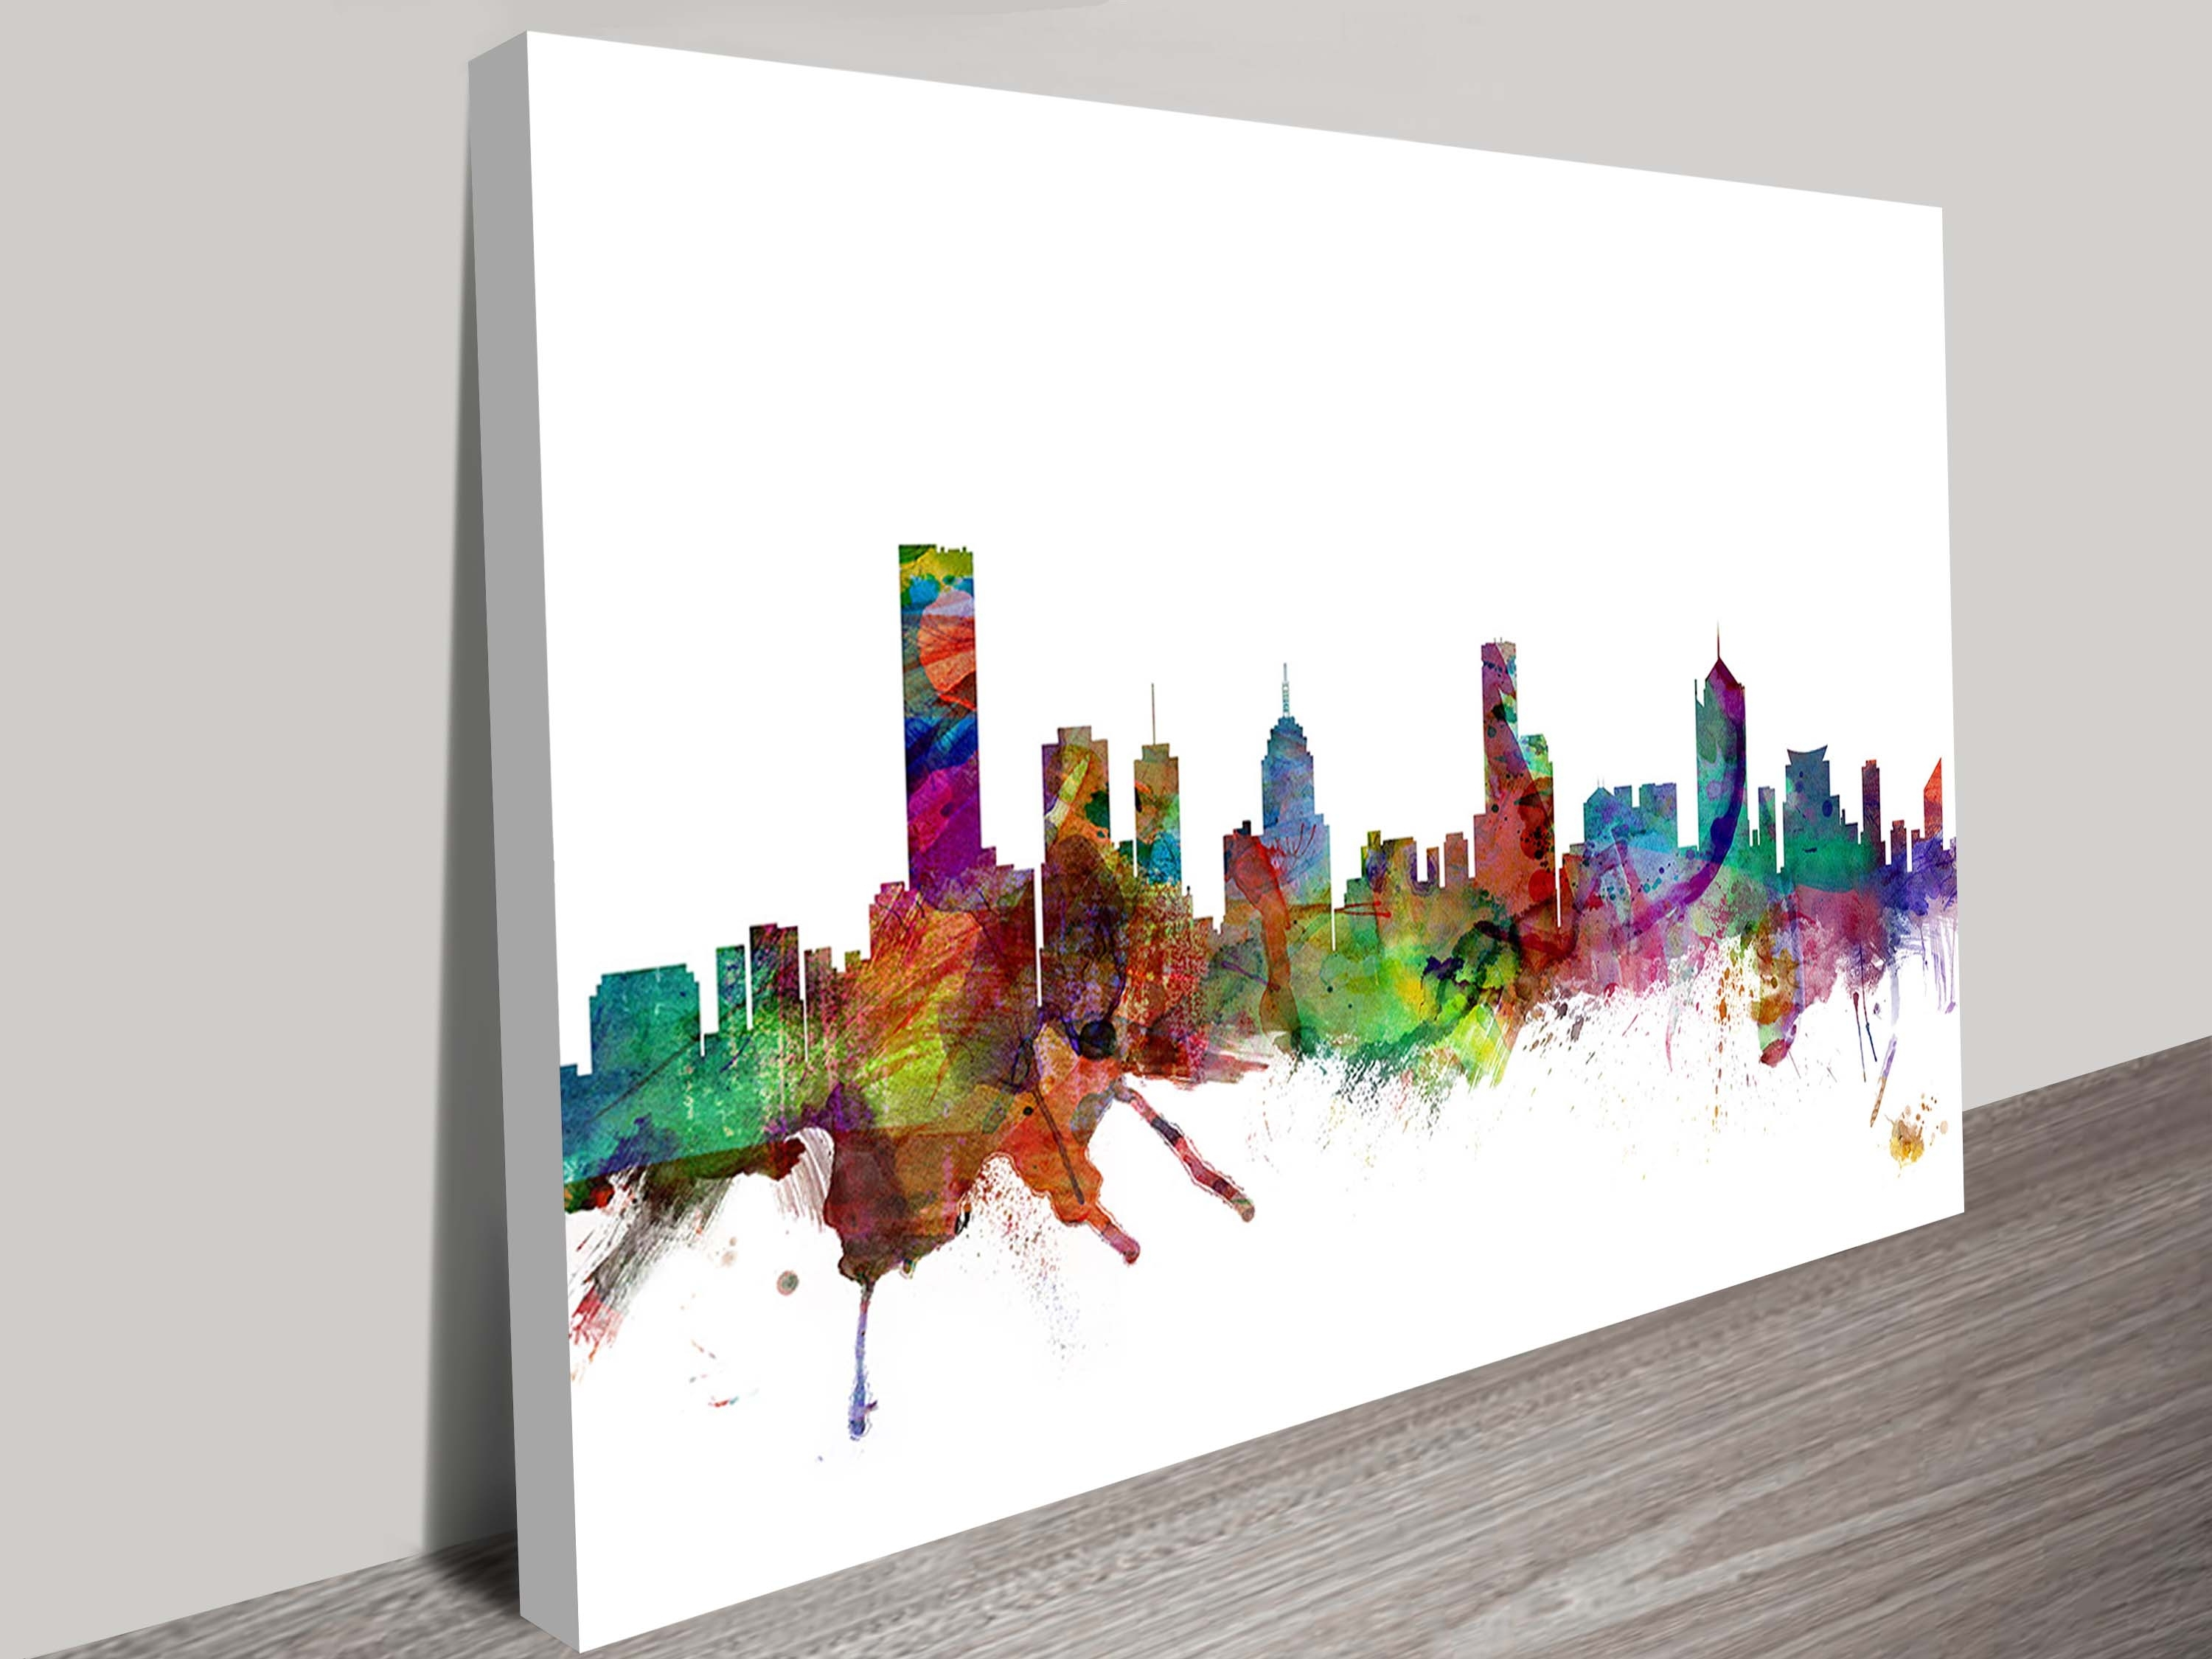 Canvas Wall Art In Melbourne With Current Watercolour Melbourne Skyline Artworkmichael Tompsett (View 7 of 15)